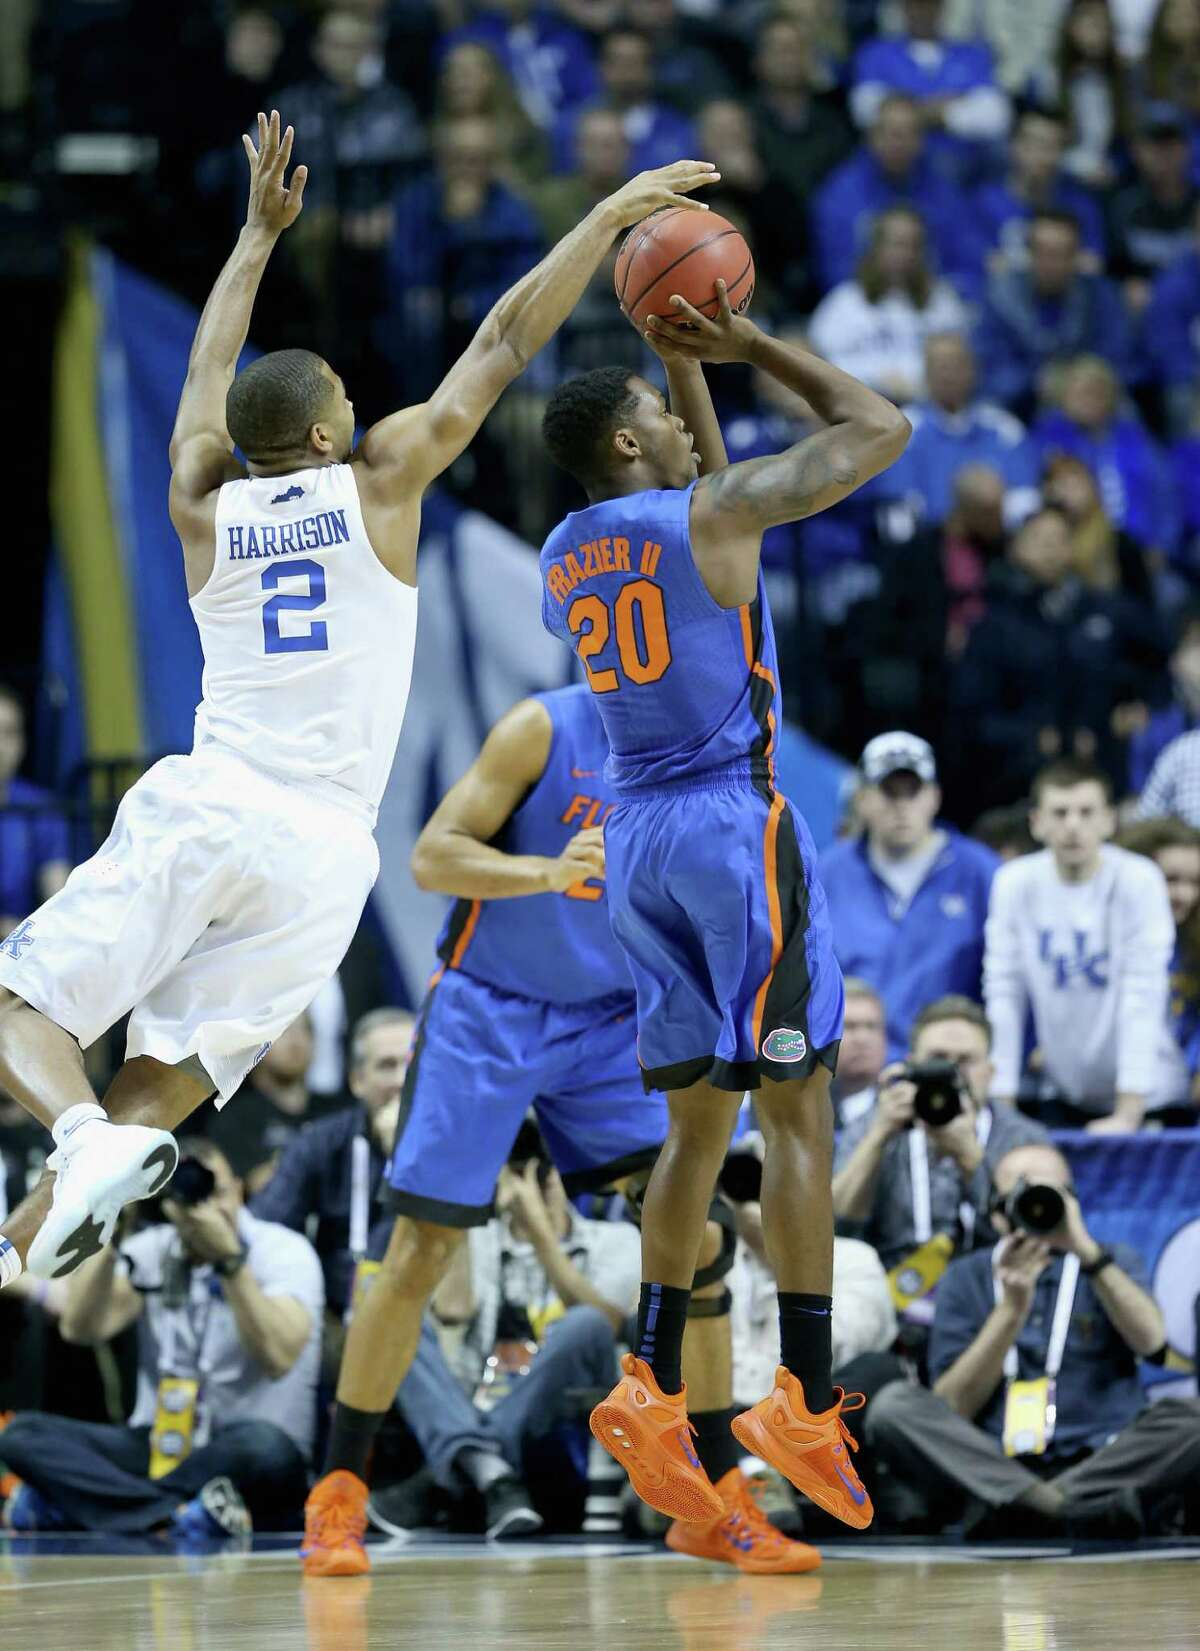 NASHVILLE, TN - MARCH 13: Aaron Harrison #2 of the Kentucky Wildcats blocks the shot of Michael Frazier #20 of the Florida Gators during the quaterfinals of the SEC Basketball Tournament at Bridgestone Arena on March 13, 2015 in Nashville, Tennessee. (Photo by Andy Lyons/Getty Images) ORG XMIT: 527094303